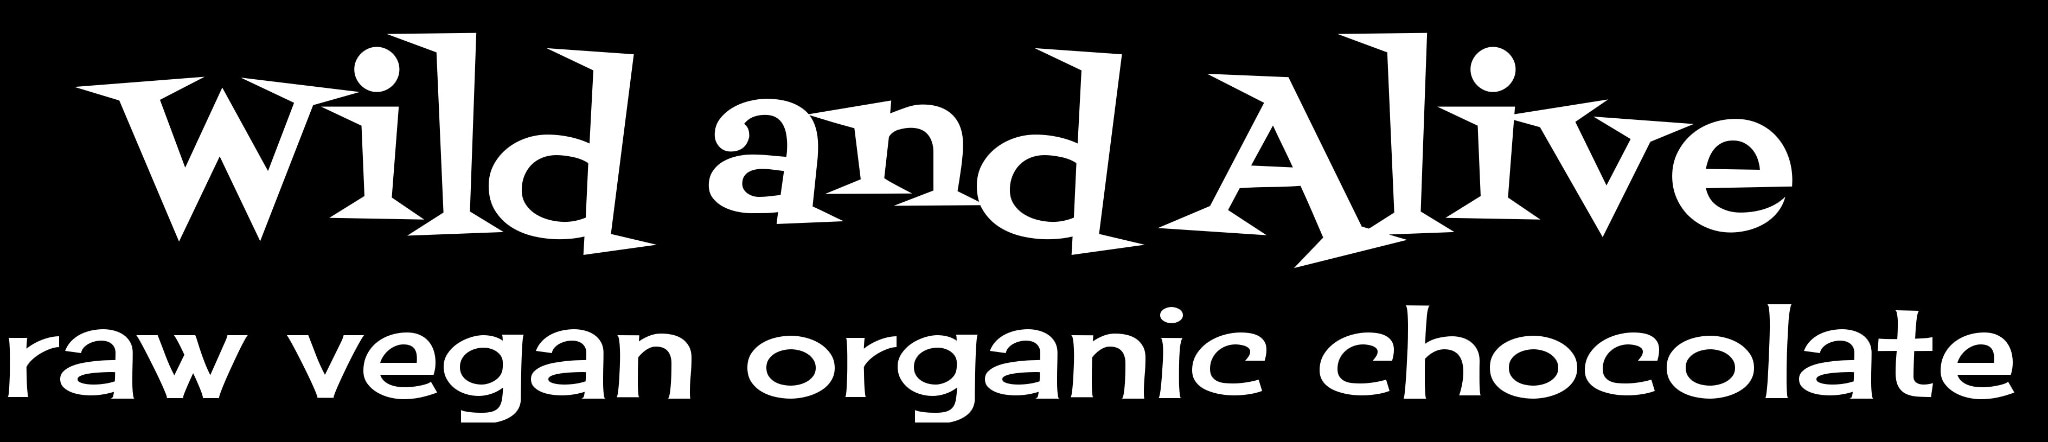 Wild and Alive Organics promo codes